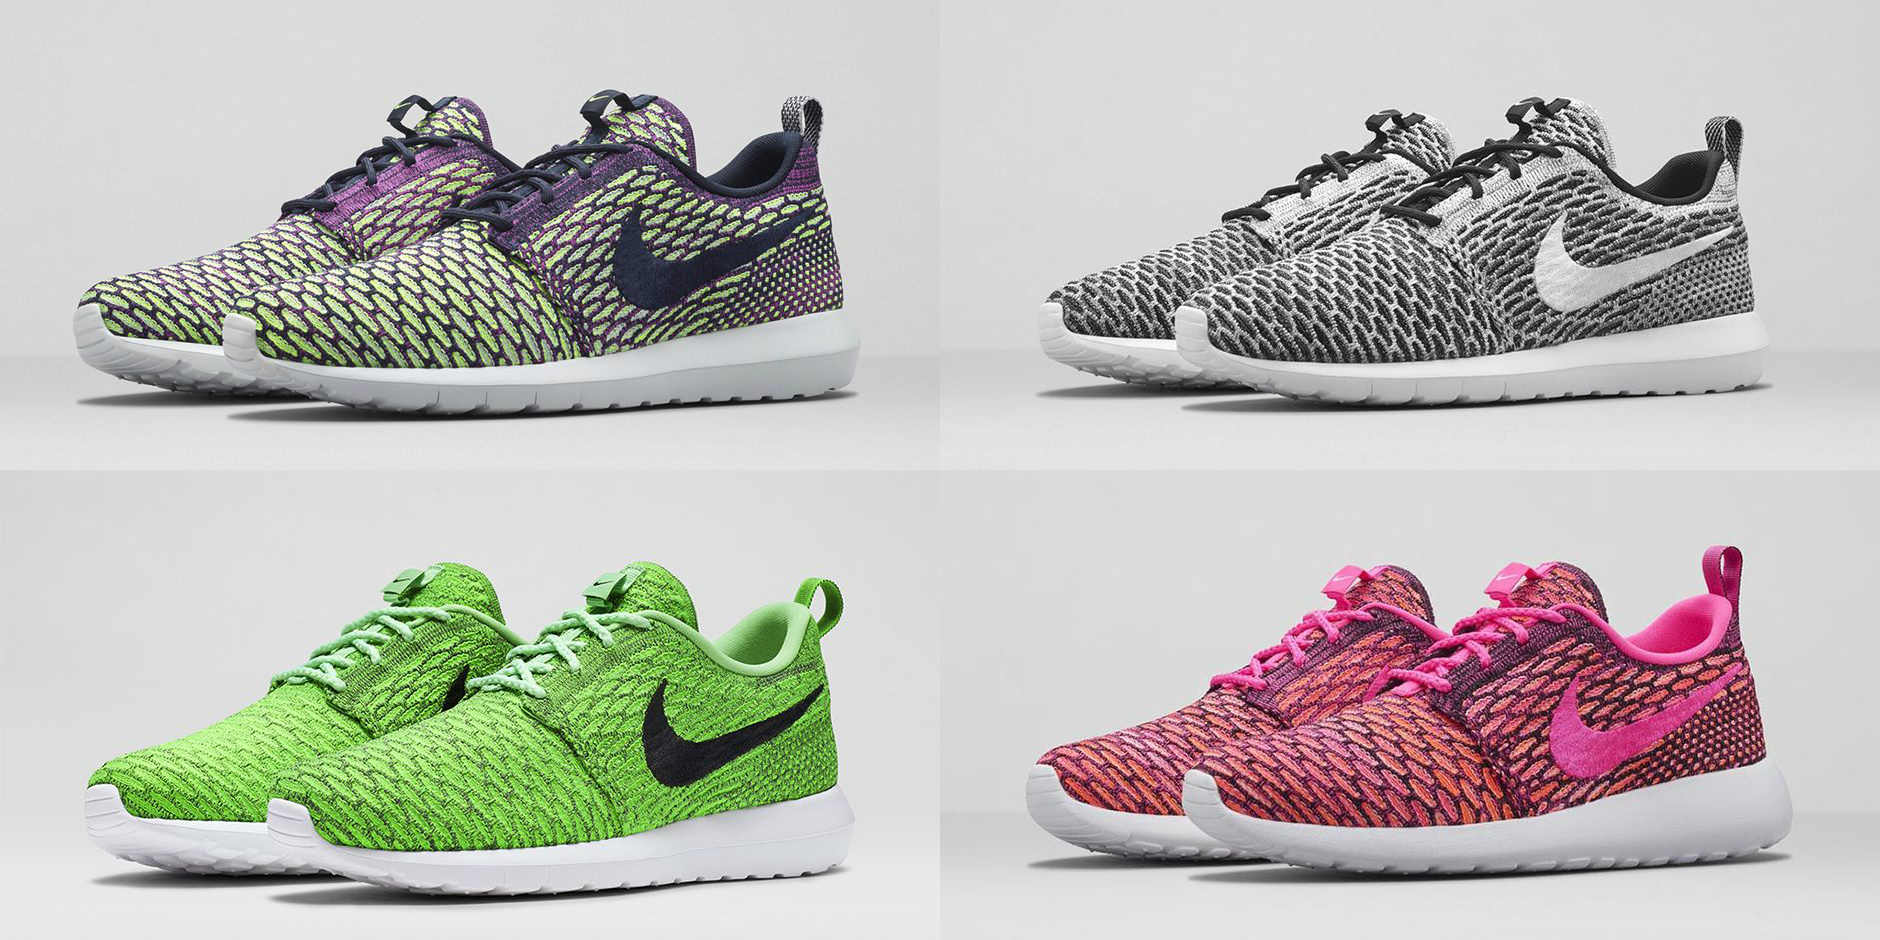 nike flyknit roshe run multiple colorways available now. Black Bedroom Furniture Sets. Home Design Ideas